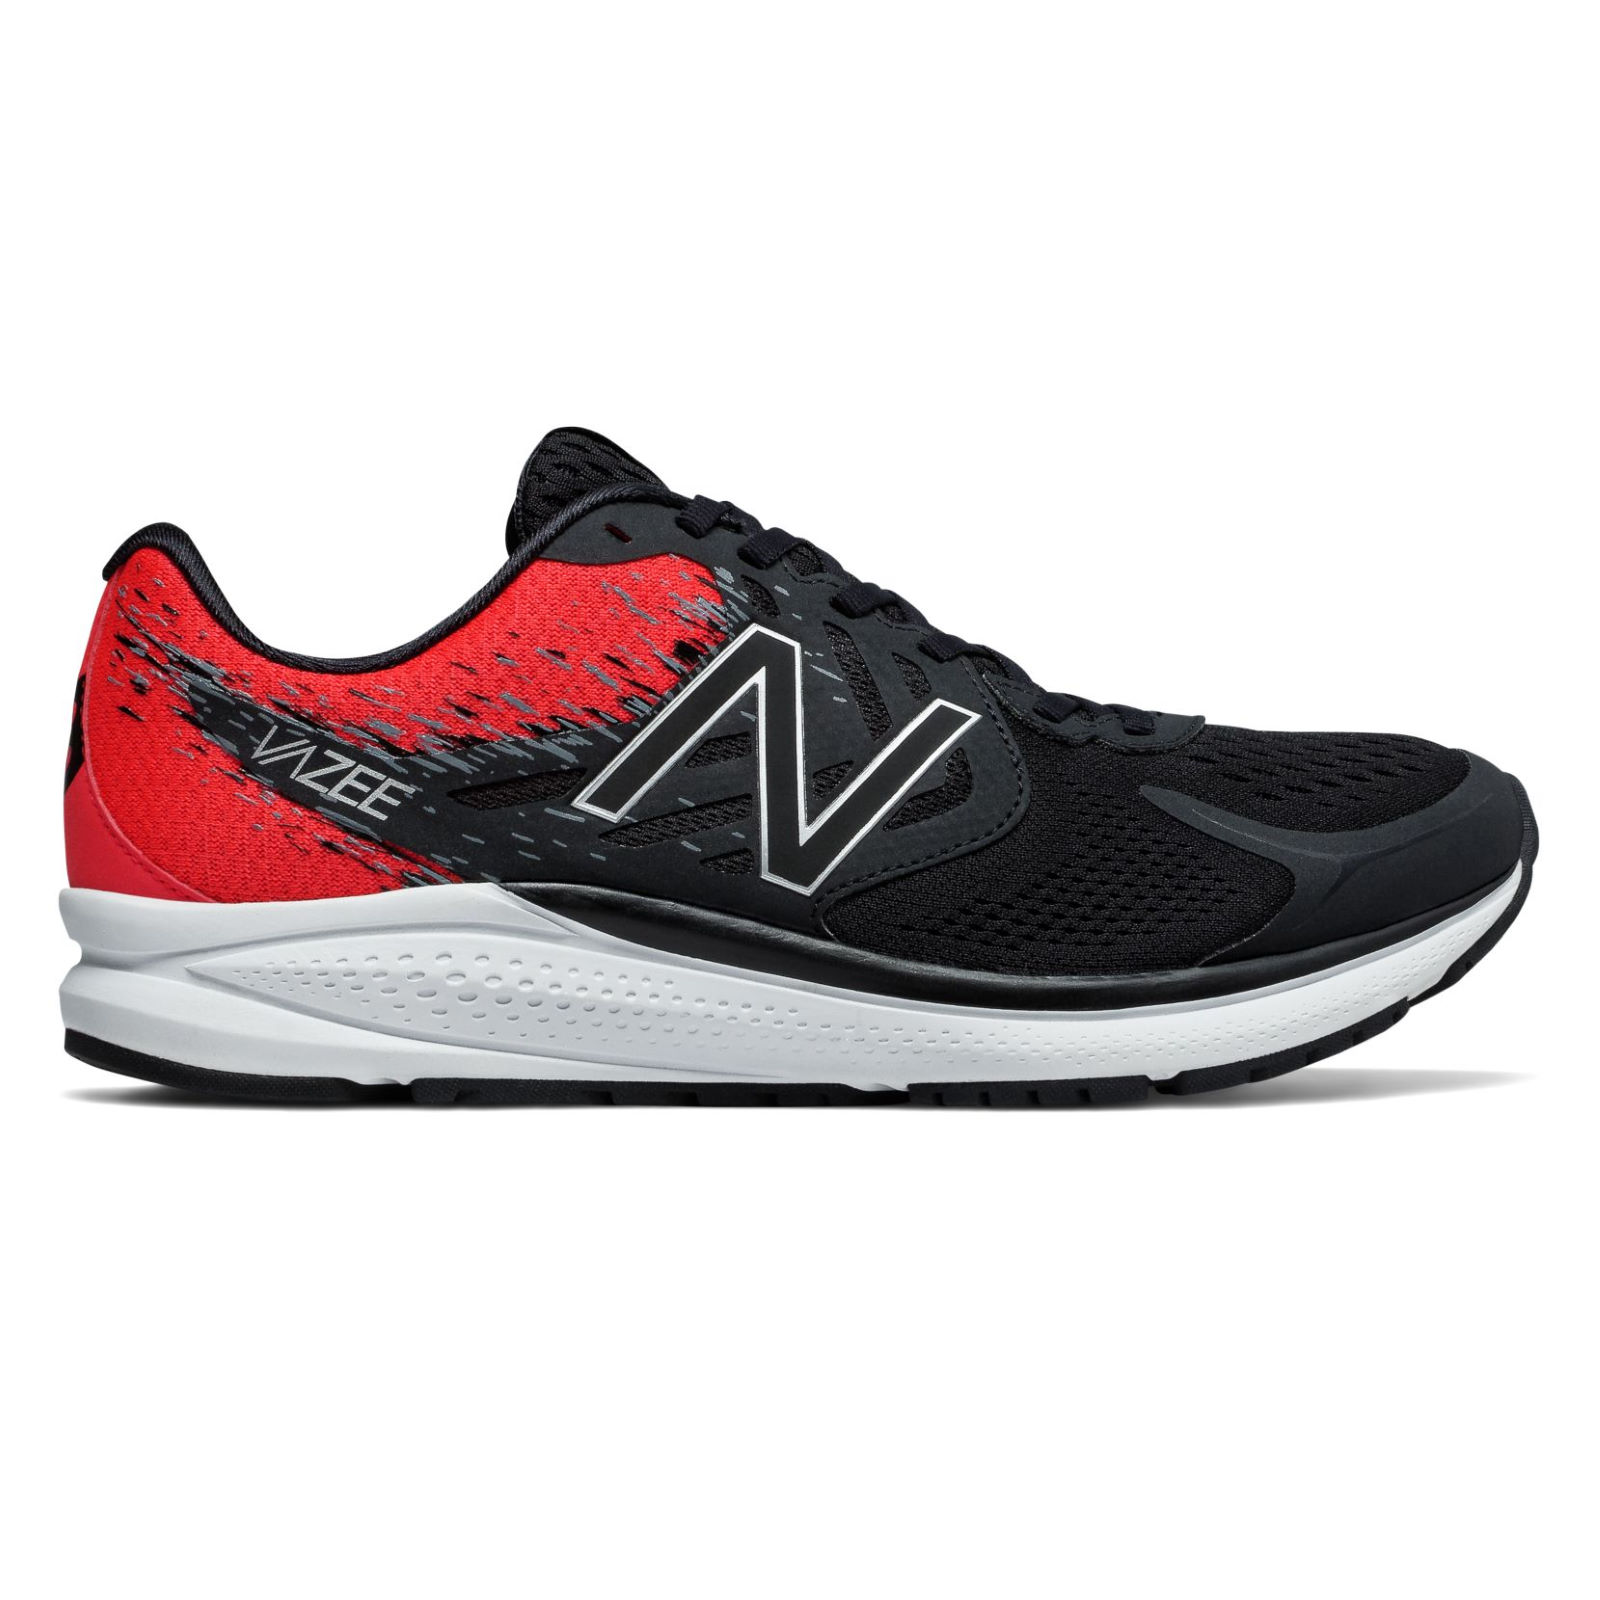 info for 02708 32a18 Wiggle Cycle To Work | New Balance Prism v2 Shoes | Running ...